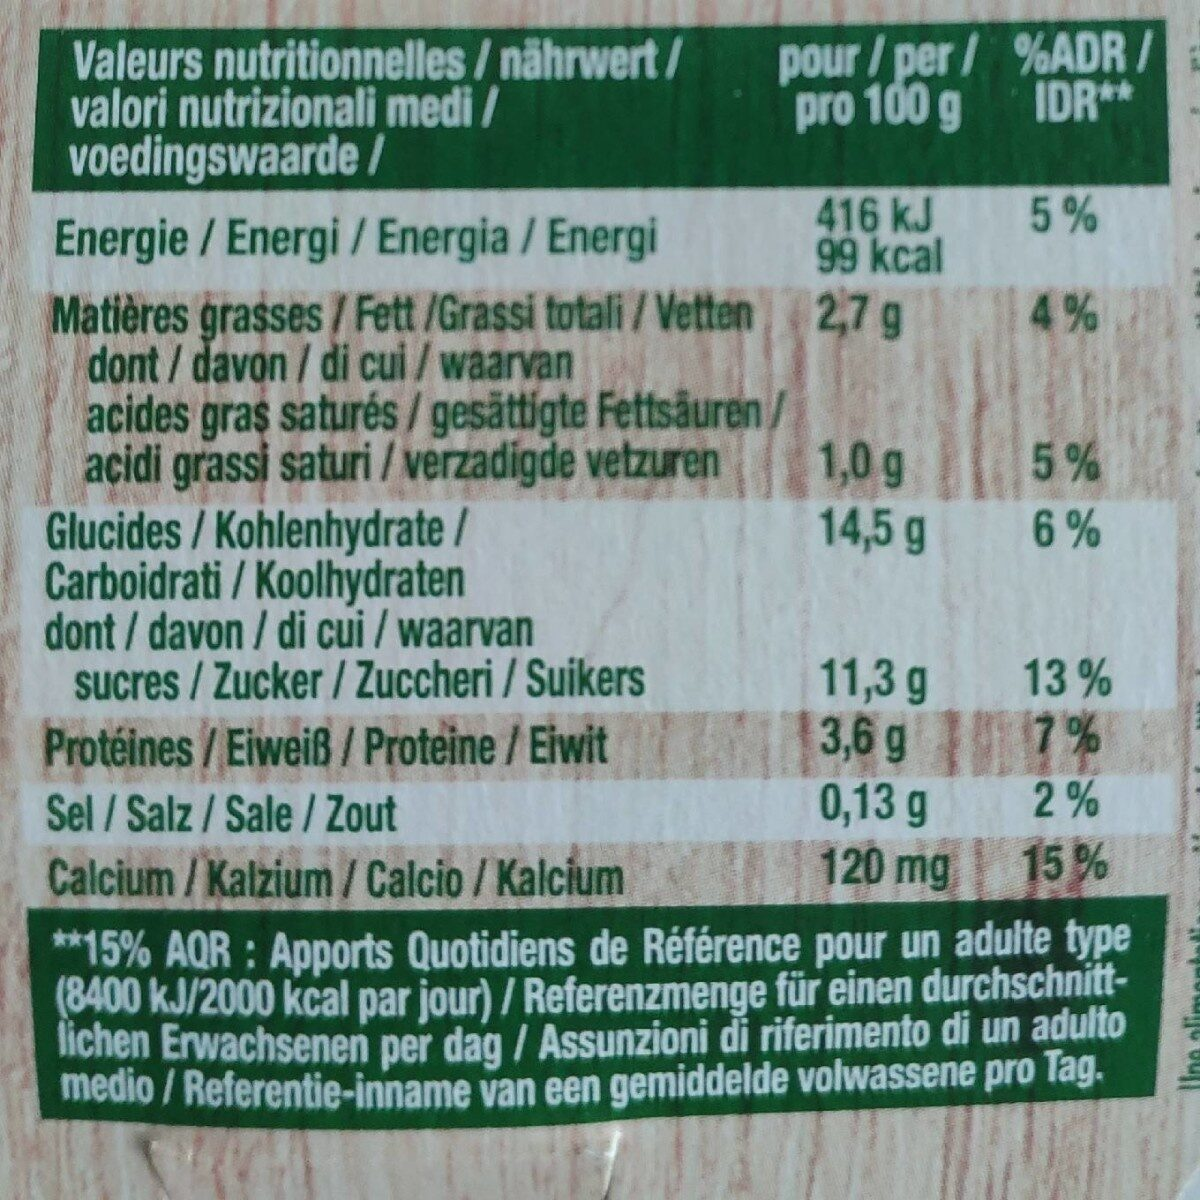 Postre vegetal de soja plaisir chocolate sin lactosa - Nutrition facts - es